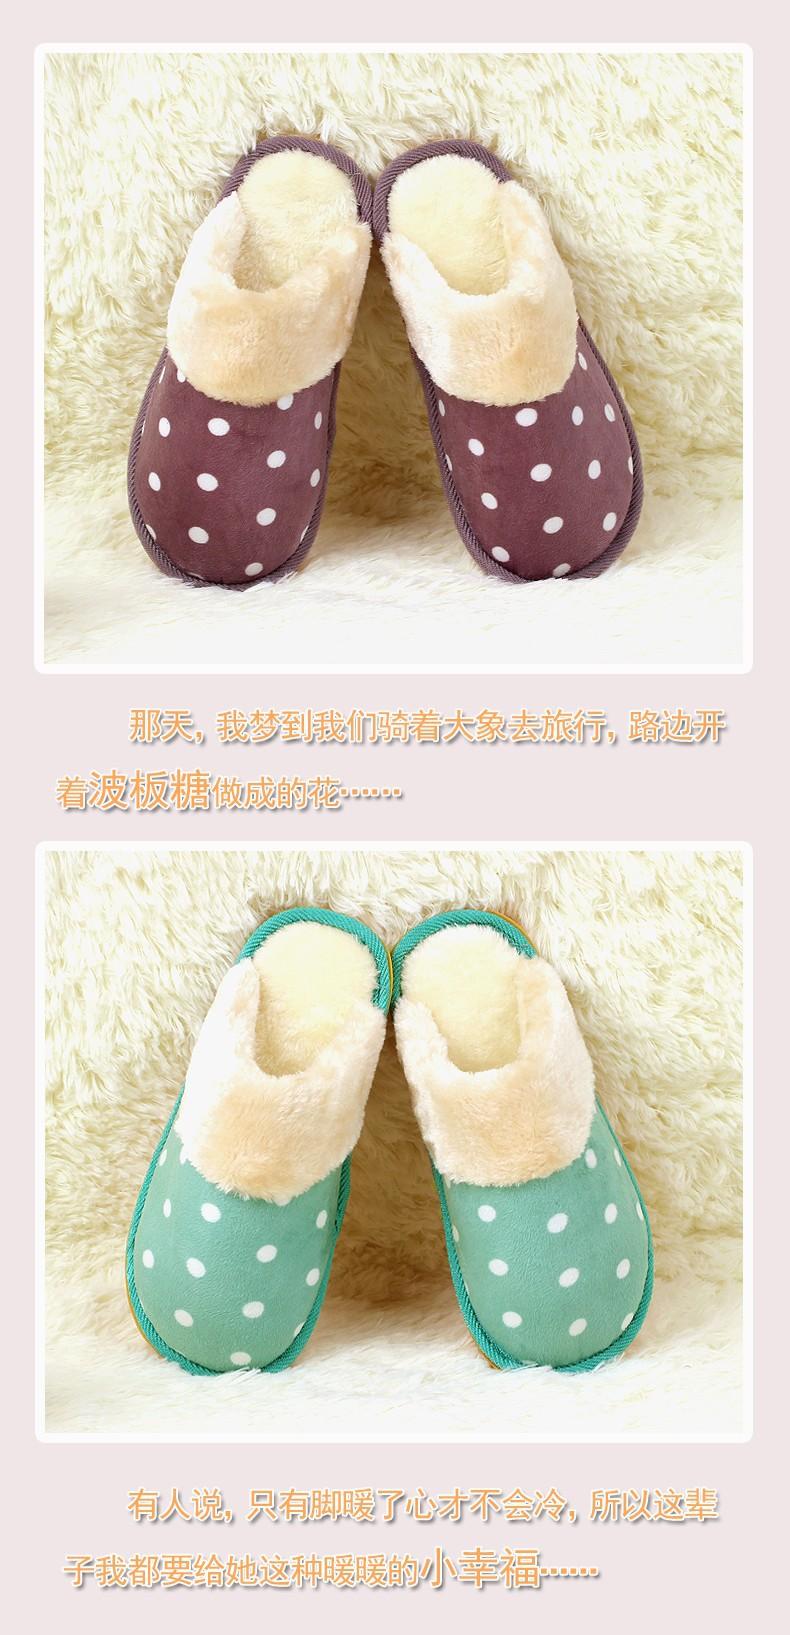 2016 New Ladies Winter Novelty Slippers Women Cute Bedroom Knitter and Stitch Warm Home Shoes on Platform Wholesale Freeshipping